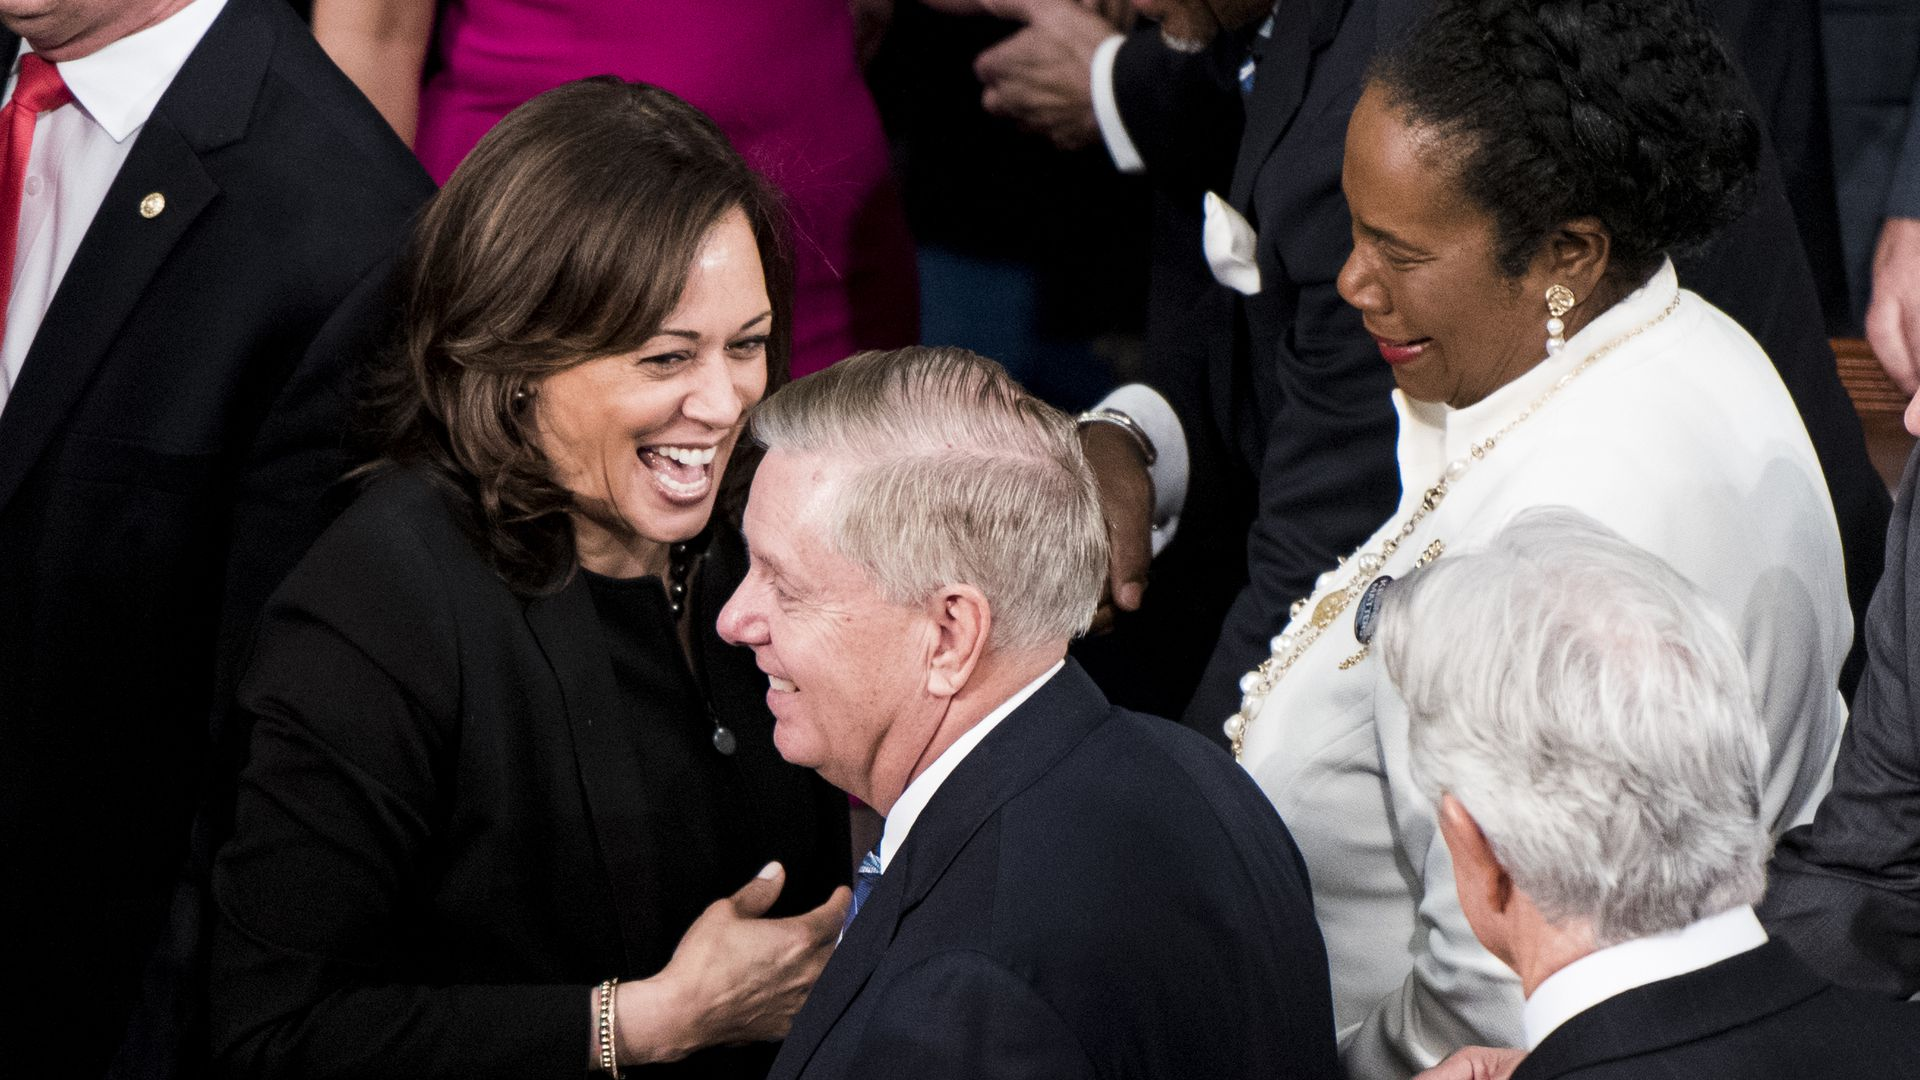 Sen. Kamala Harris, D-Calif., and Sen. Lindsey Graham, R-S.C., arrive for President Donald Trump's State of the Union Address to a joint session of Congress in the Capitol on Tuesday, Feb. 5.